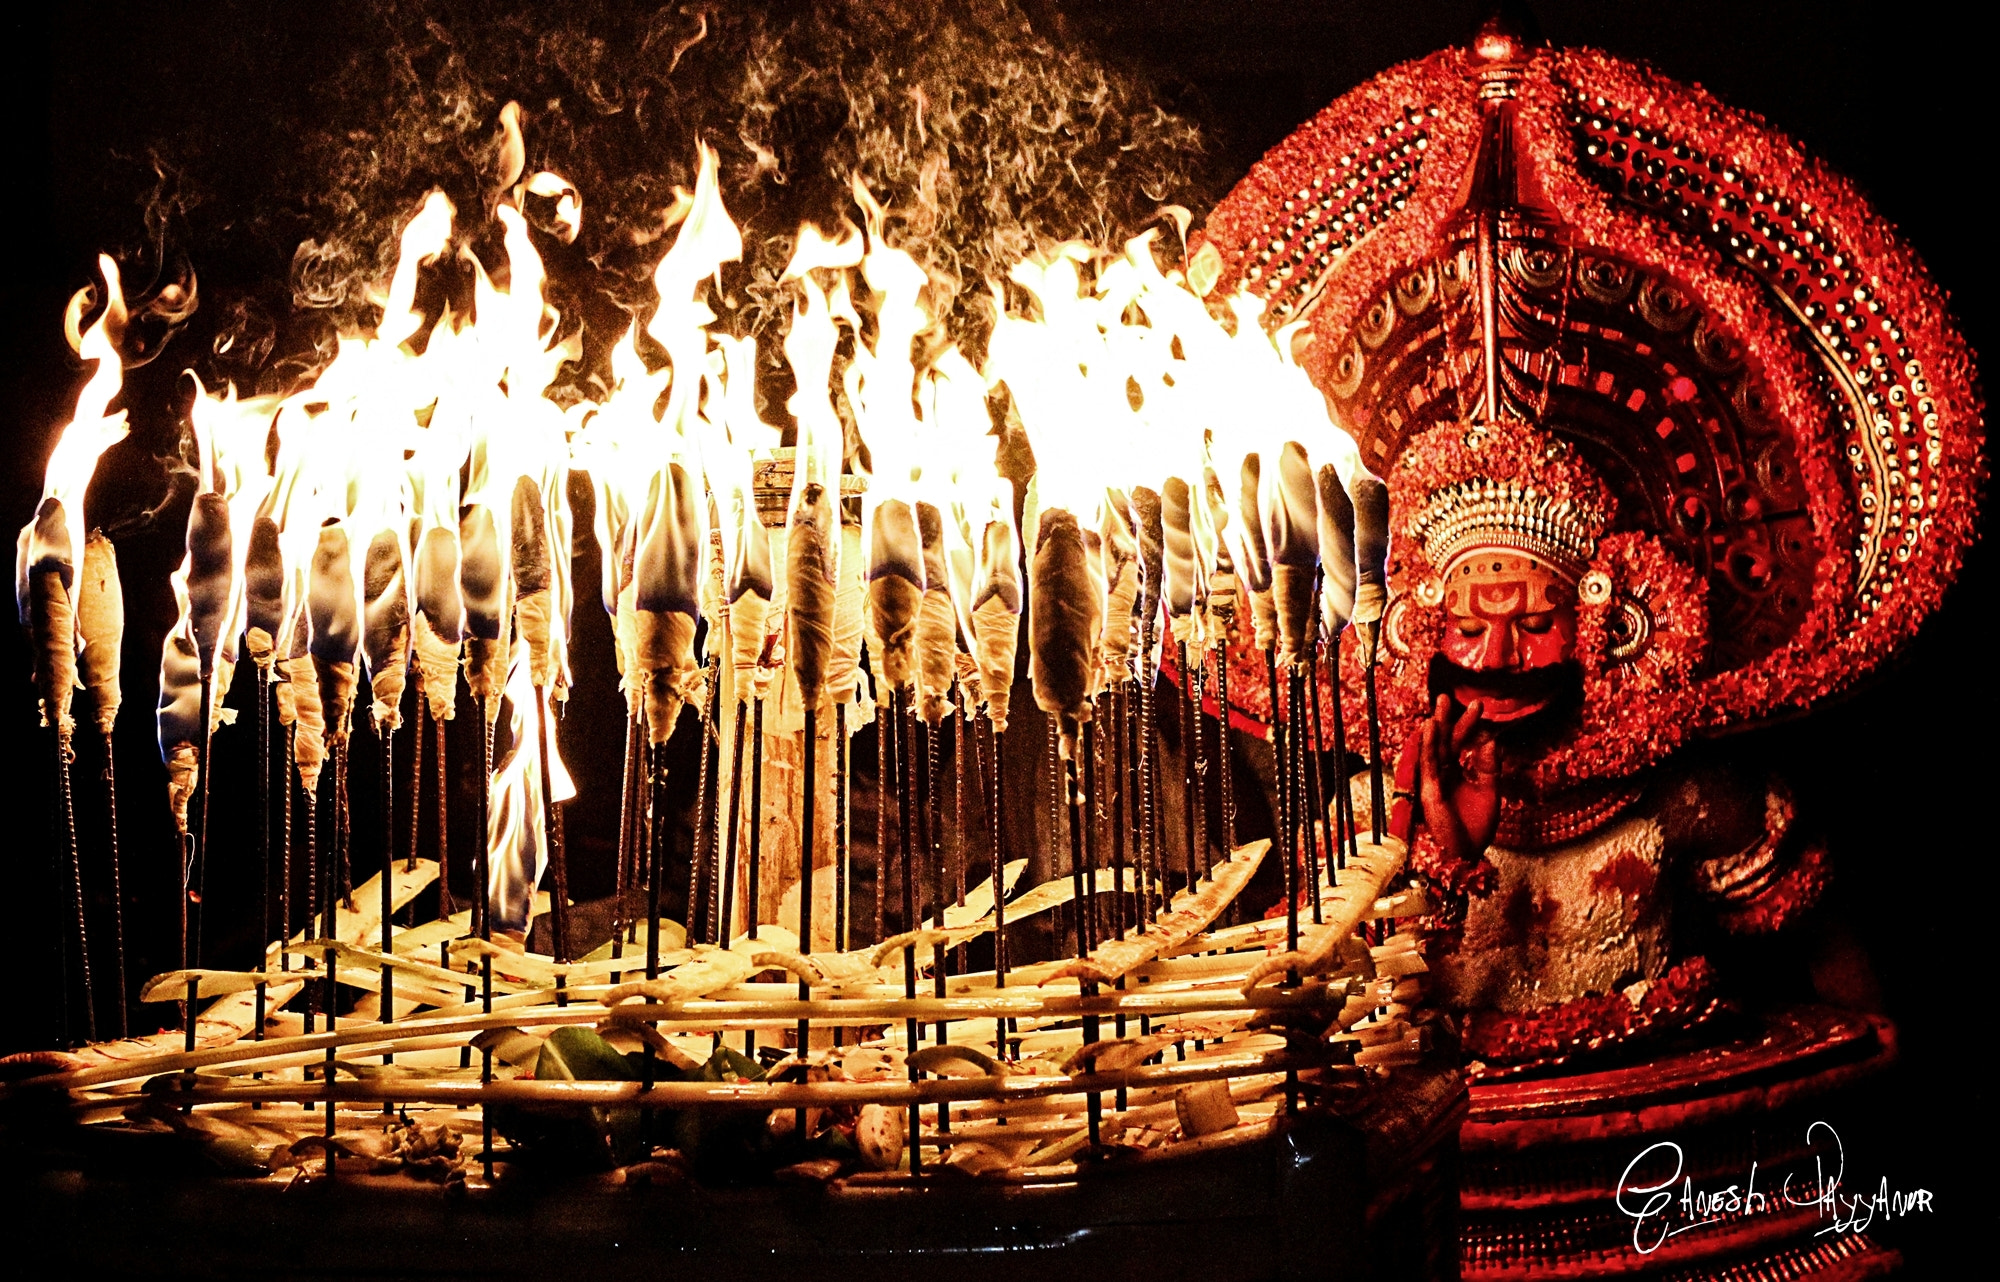 Photograph Kathivanoor Veeran Theyyam by Ganesh Payyanur on 500px